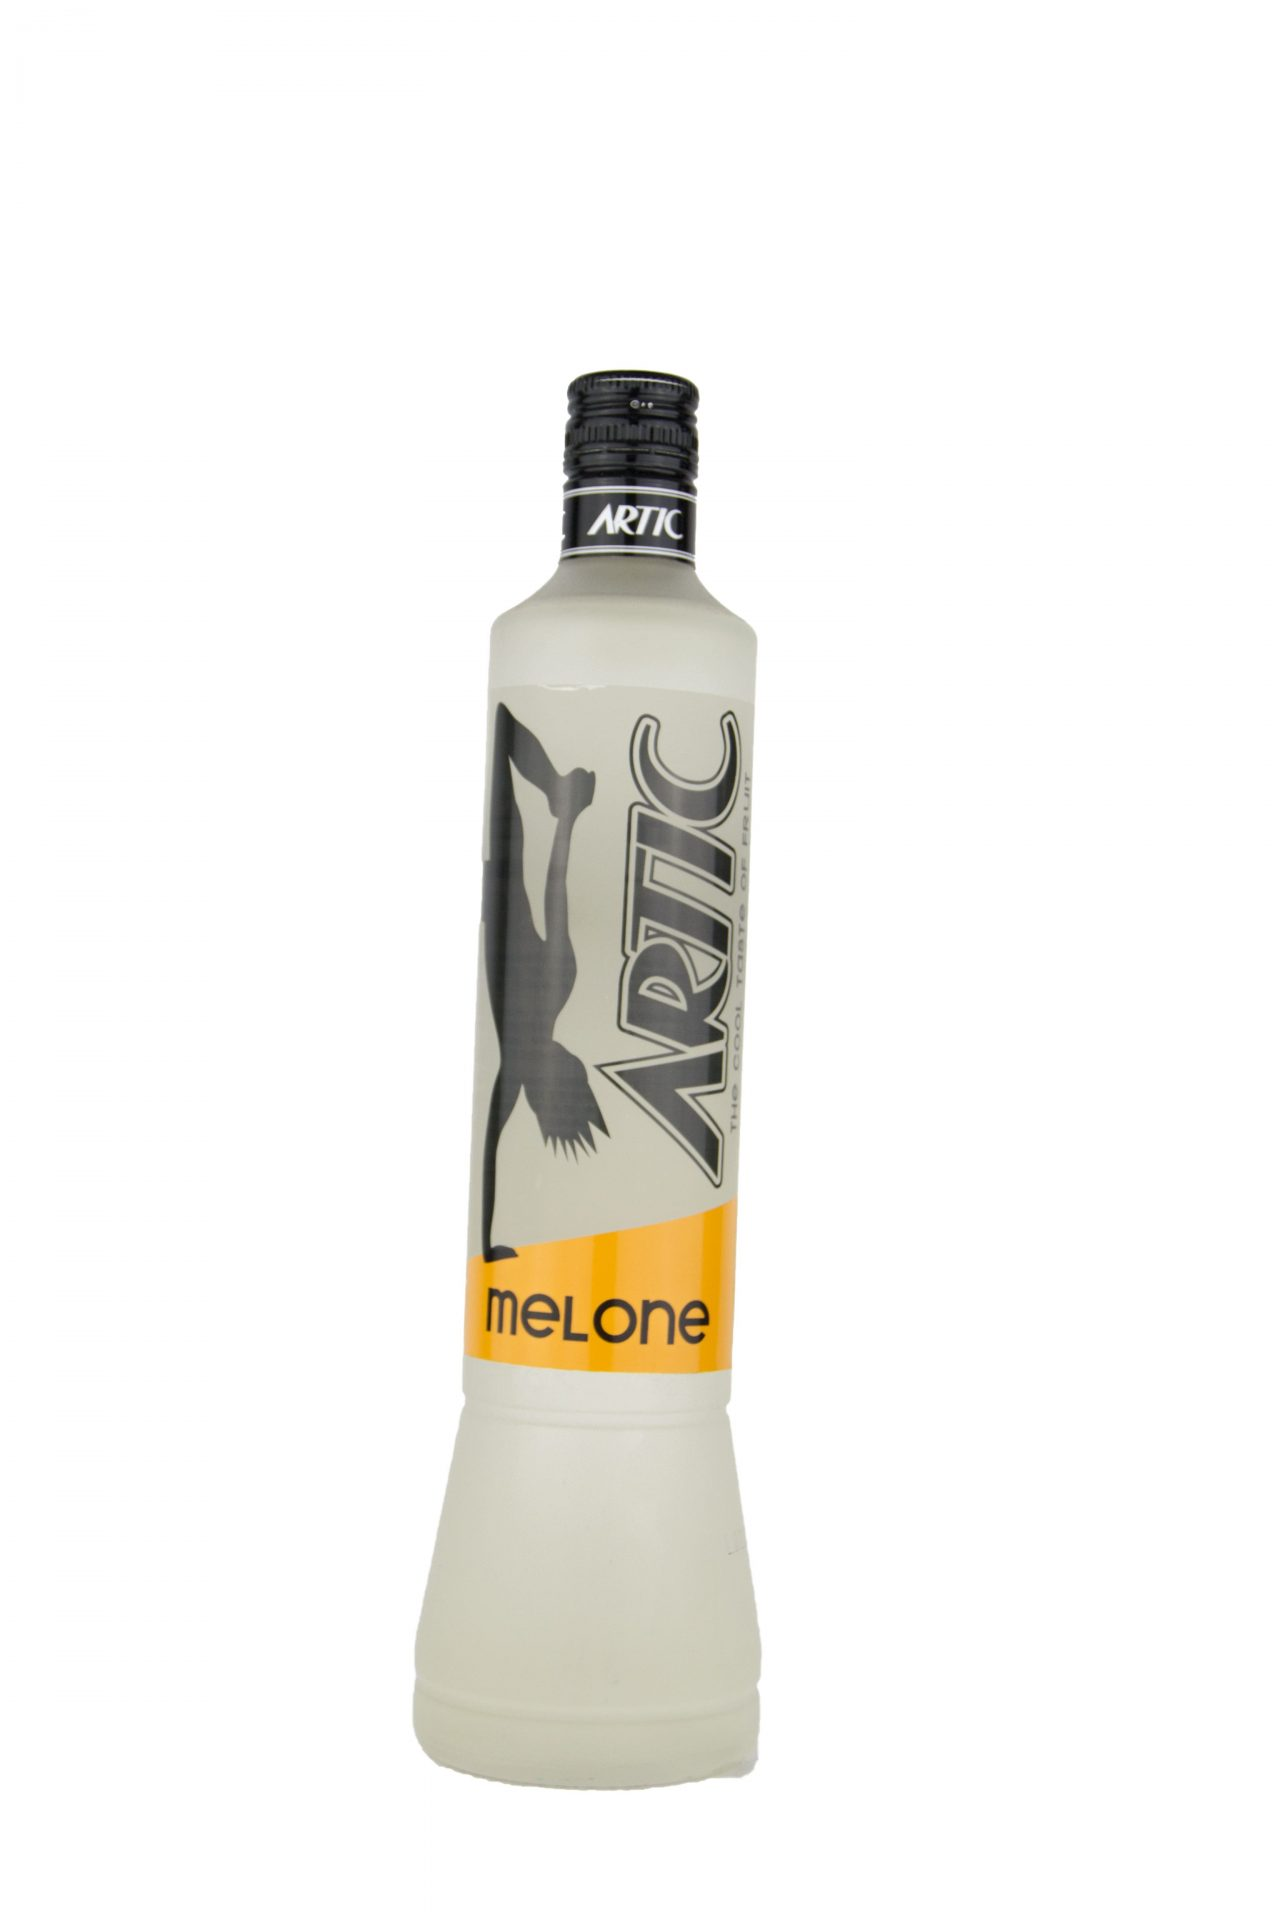 Artic – Vodka & Melone